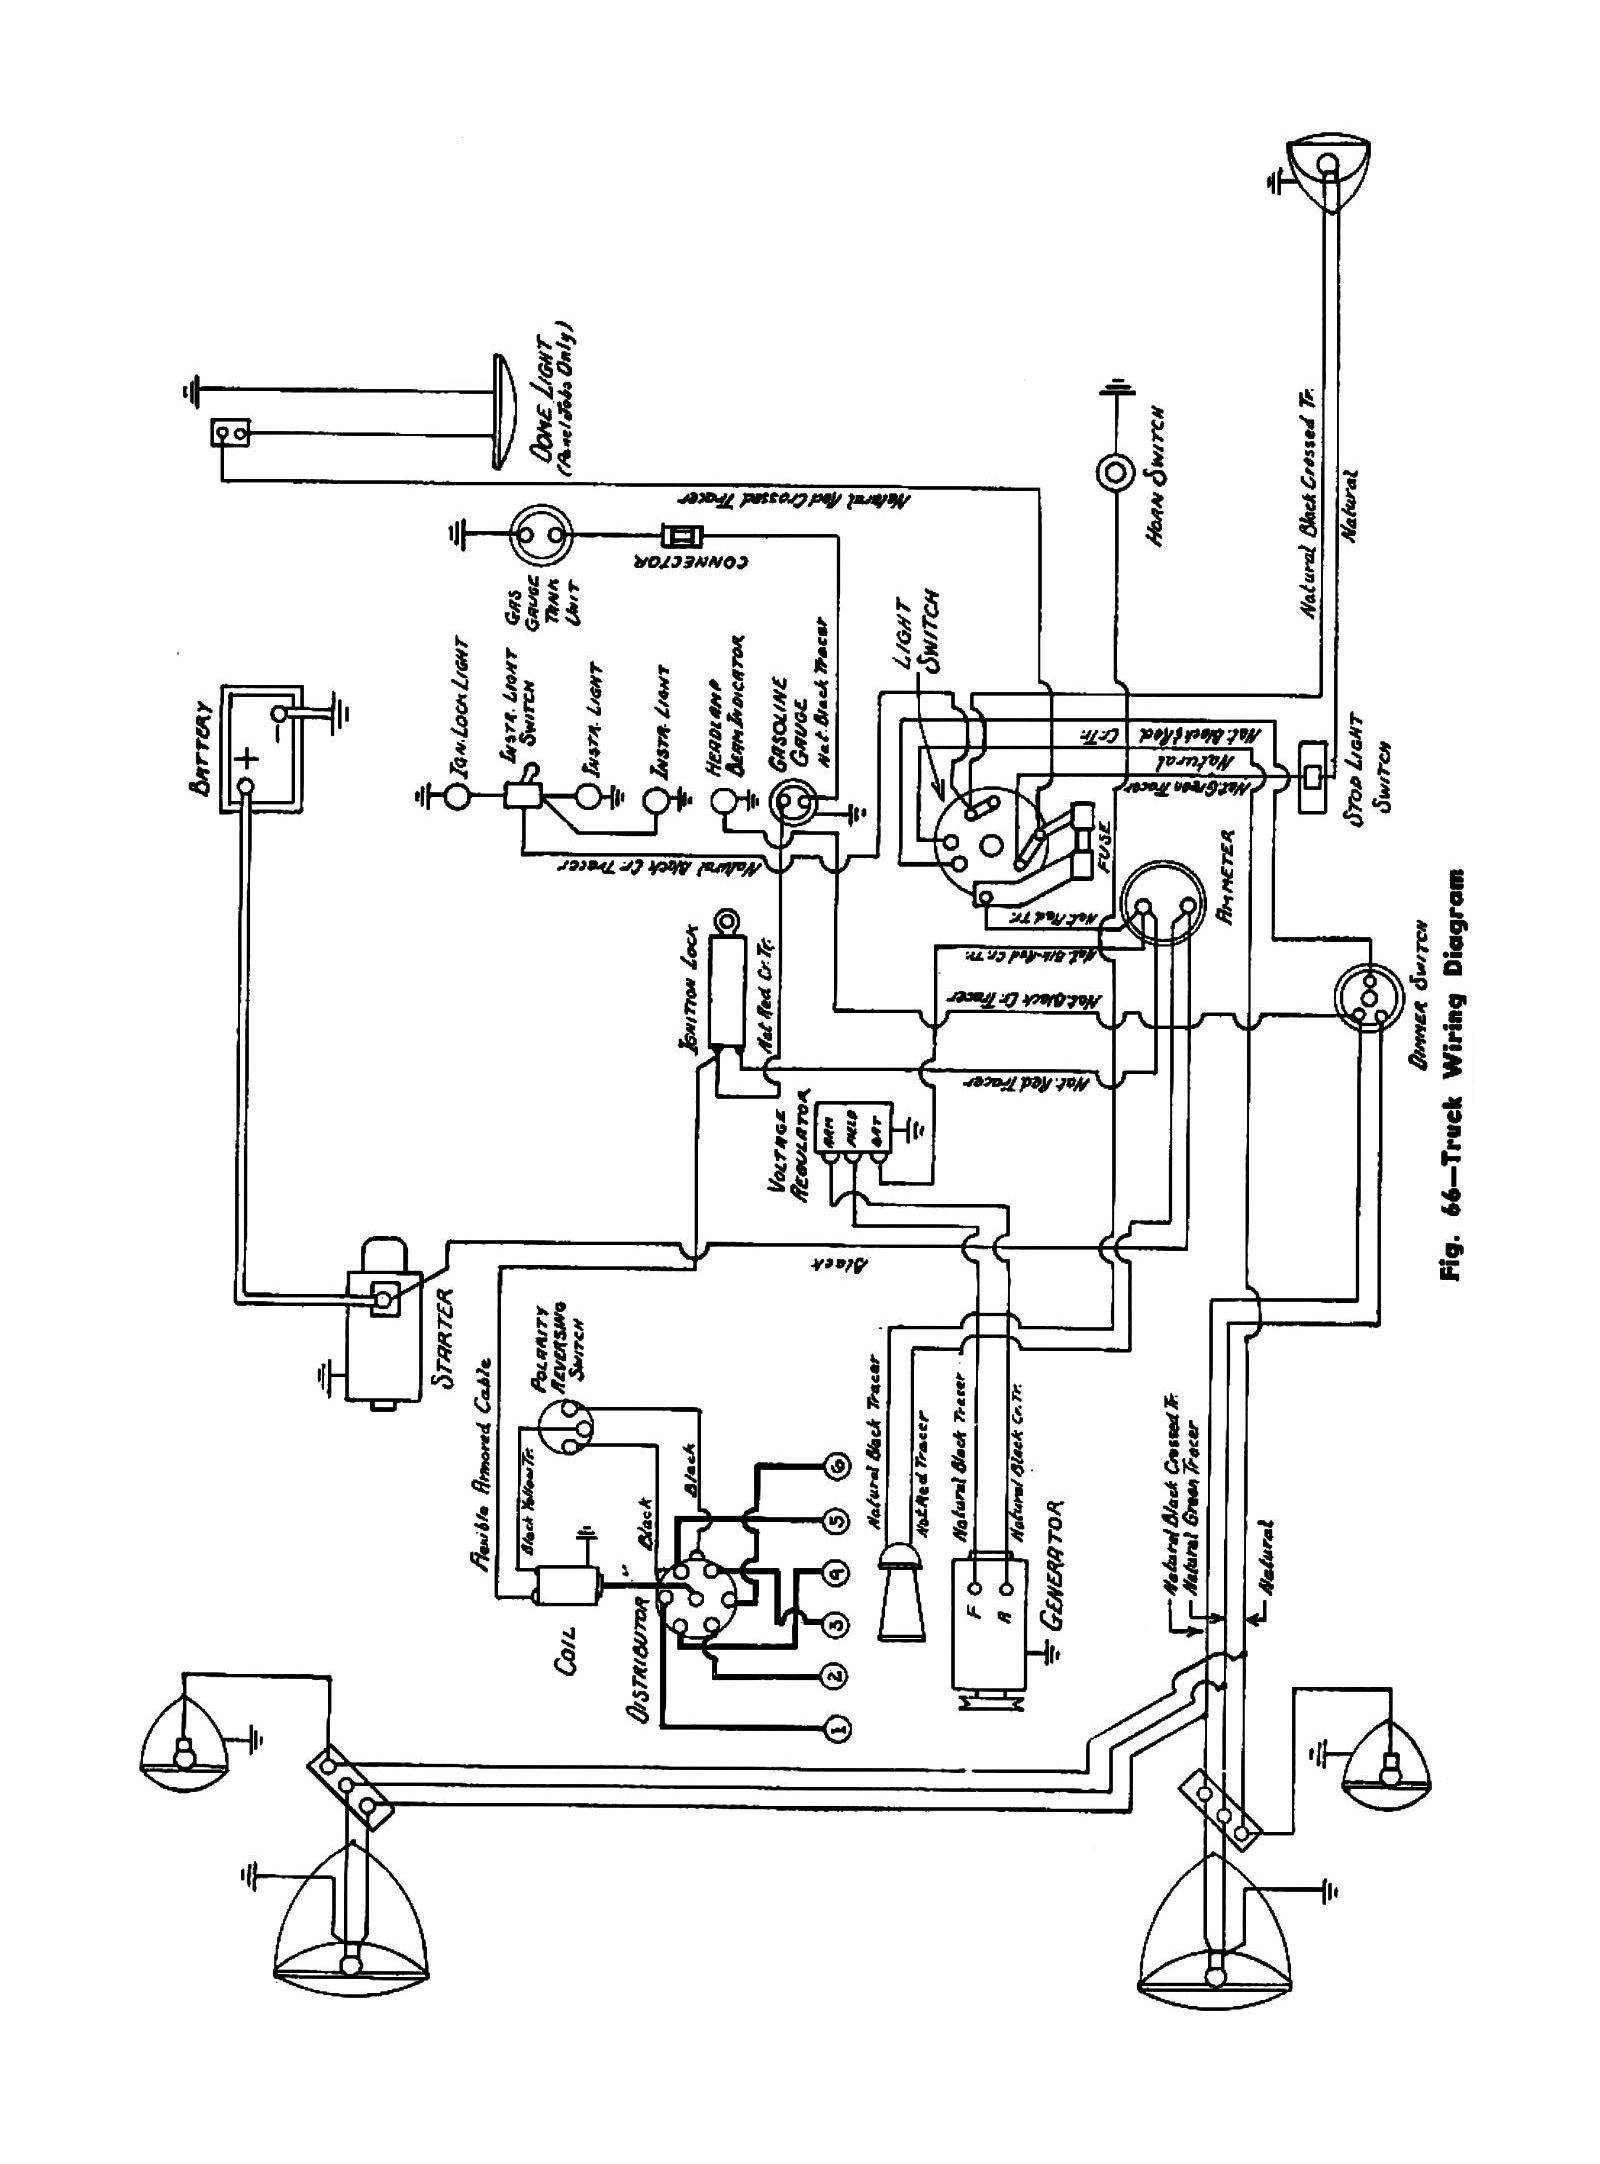 Looking for a wiring schematic for a 1947-48 ONLY of a ...